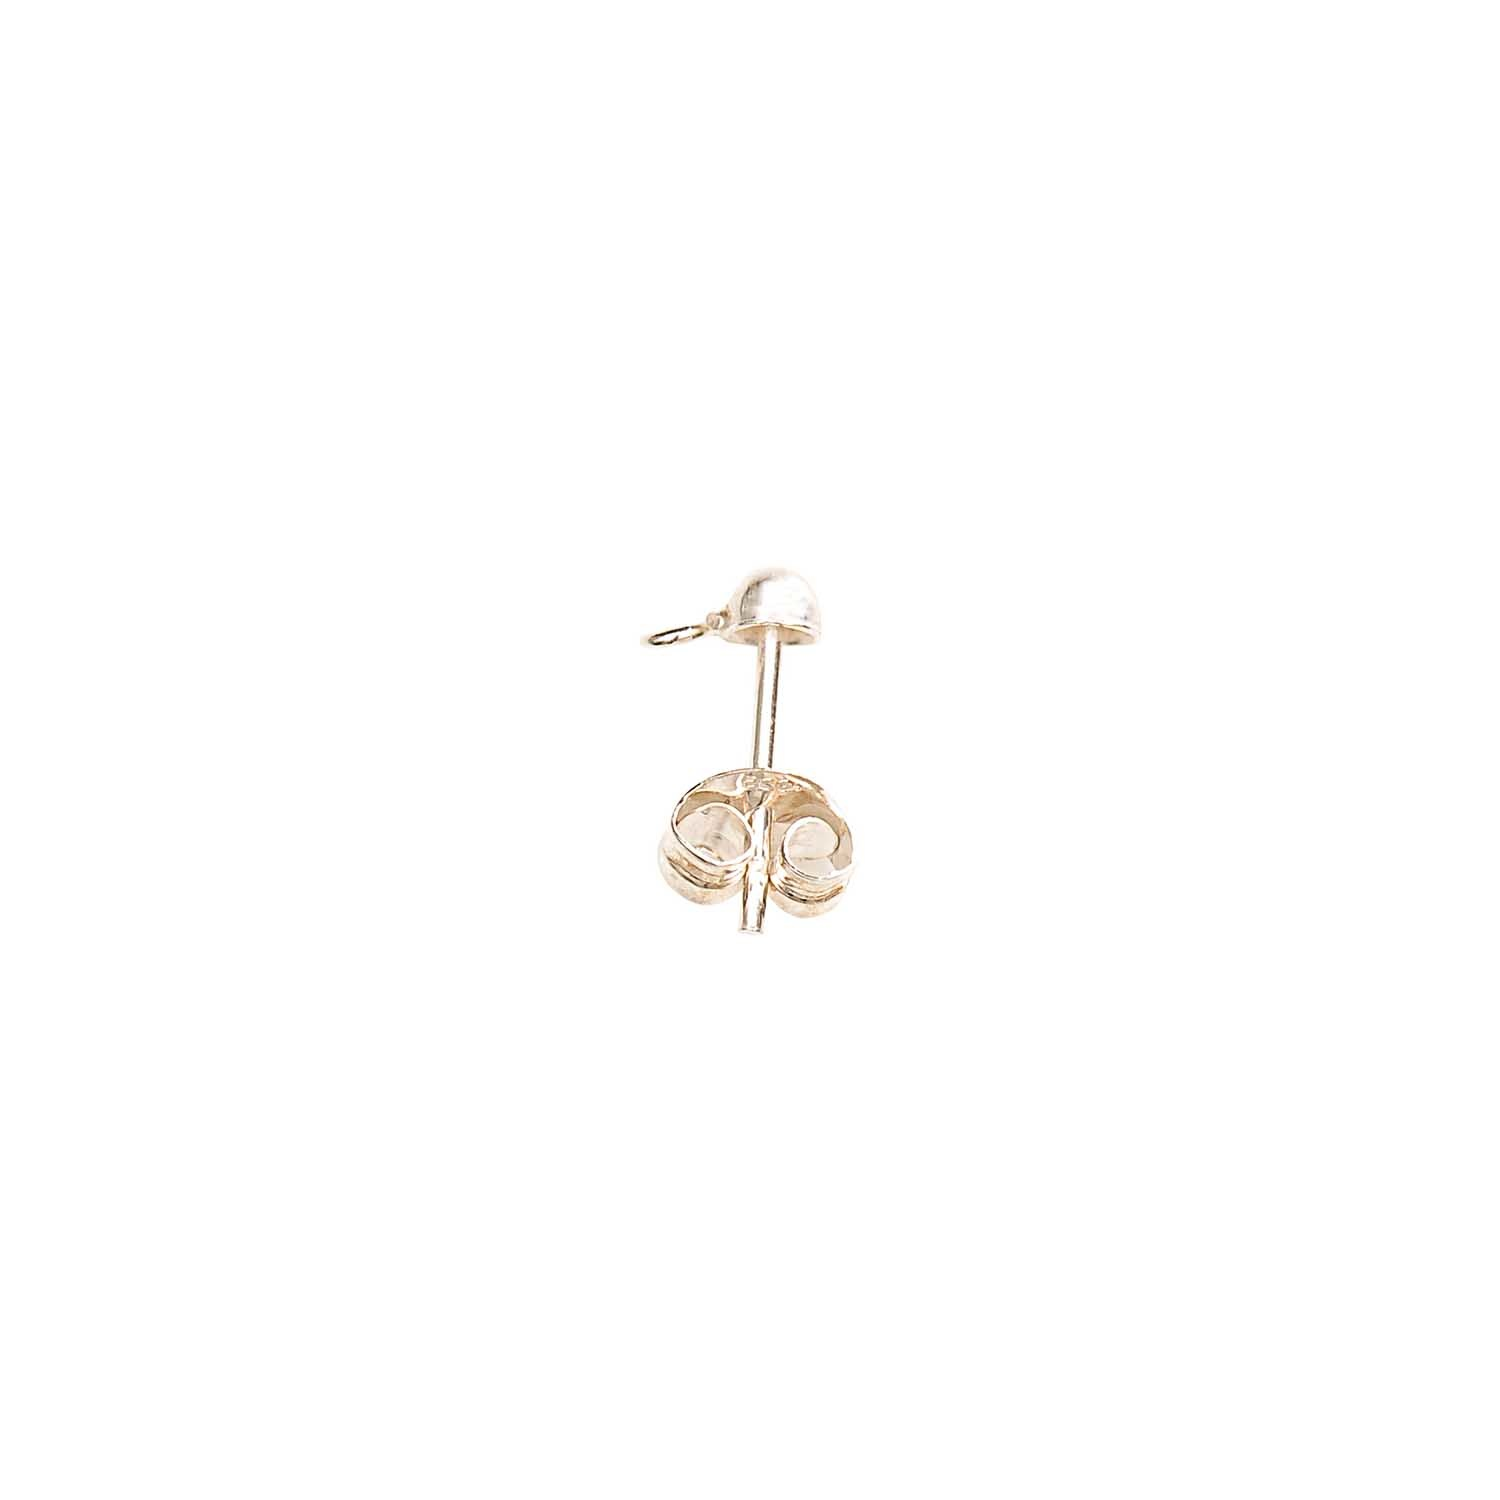 Rico NAY EARRING STUD 925SILVER 15MM